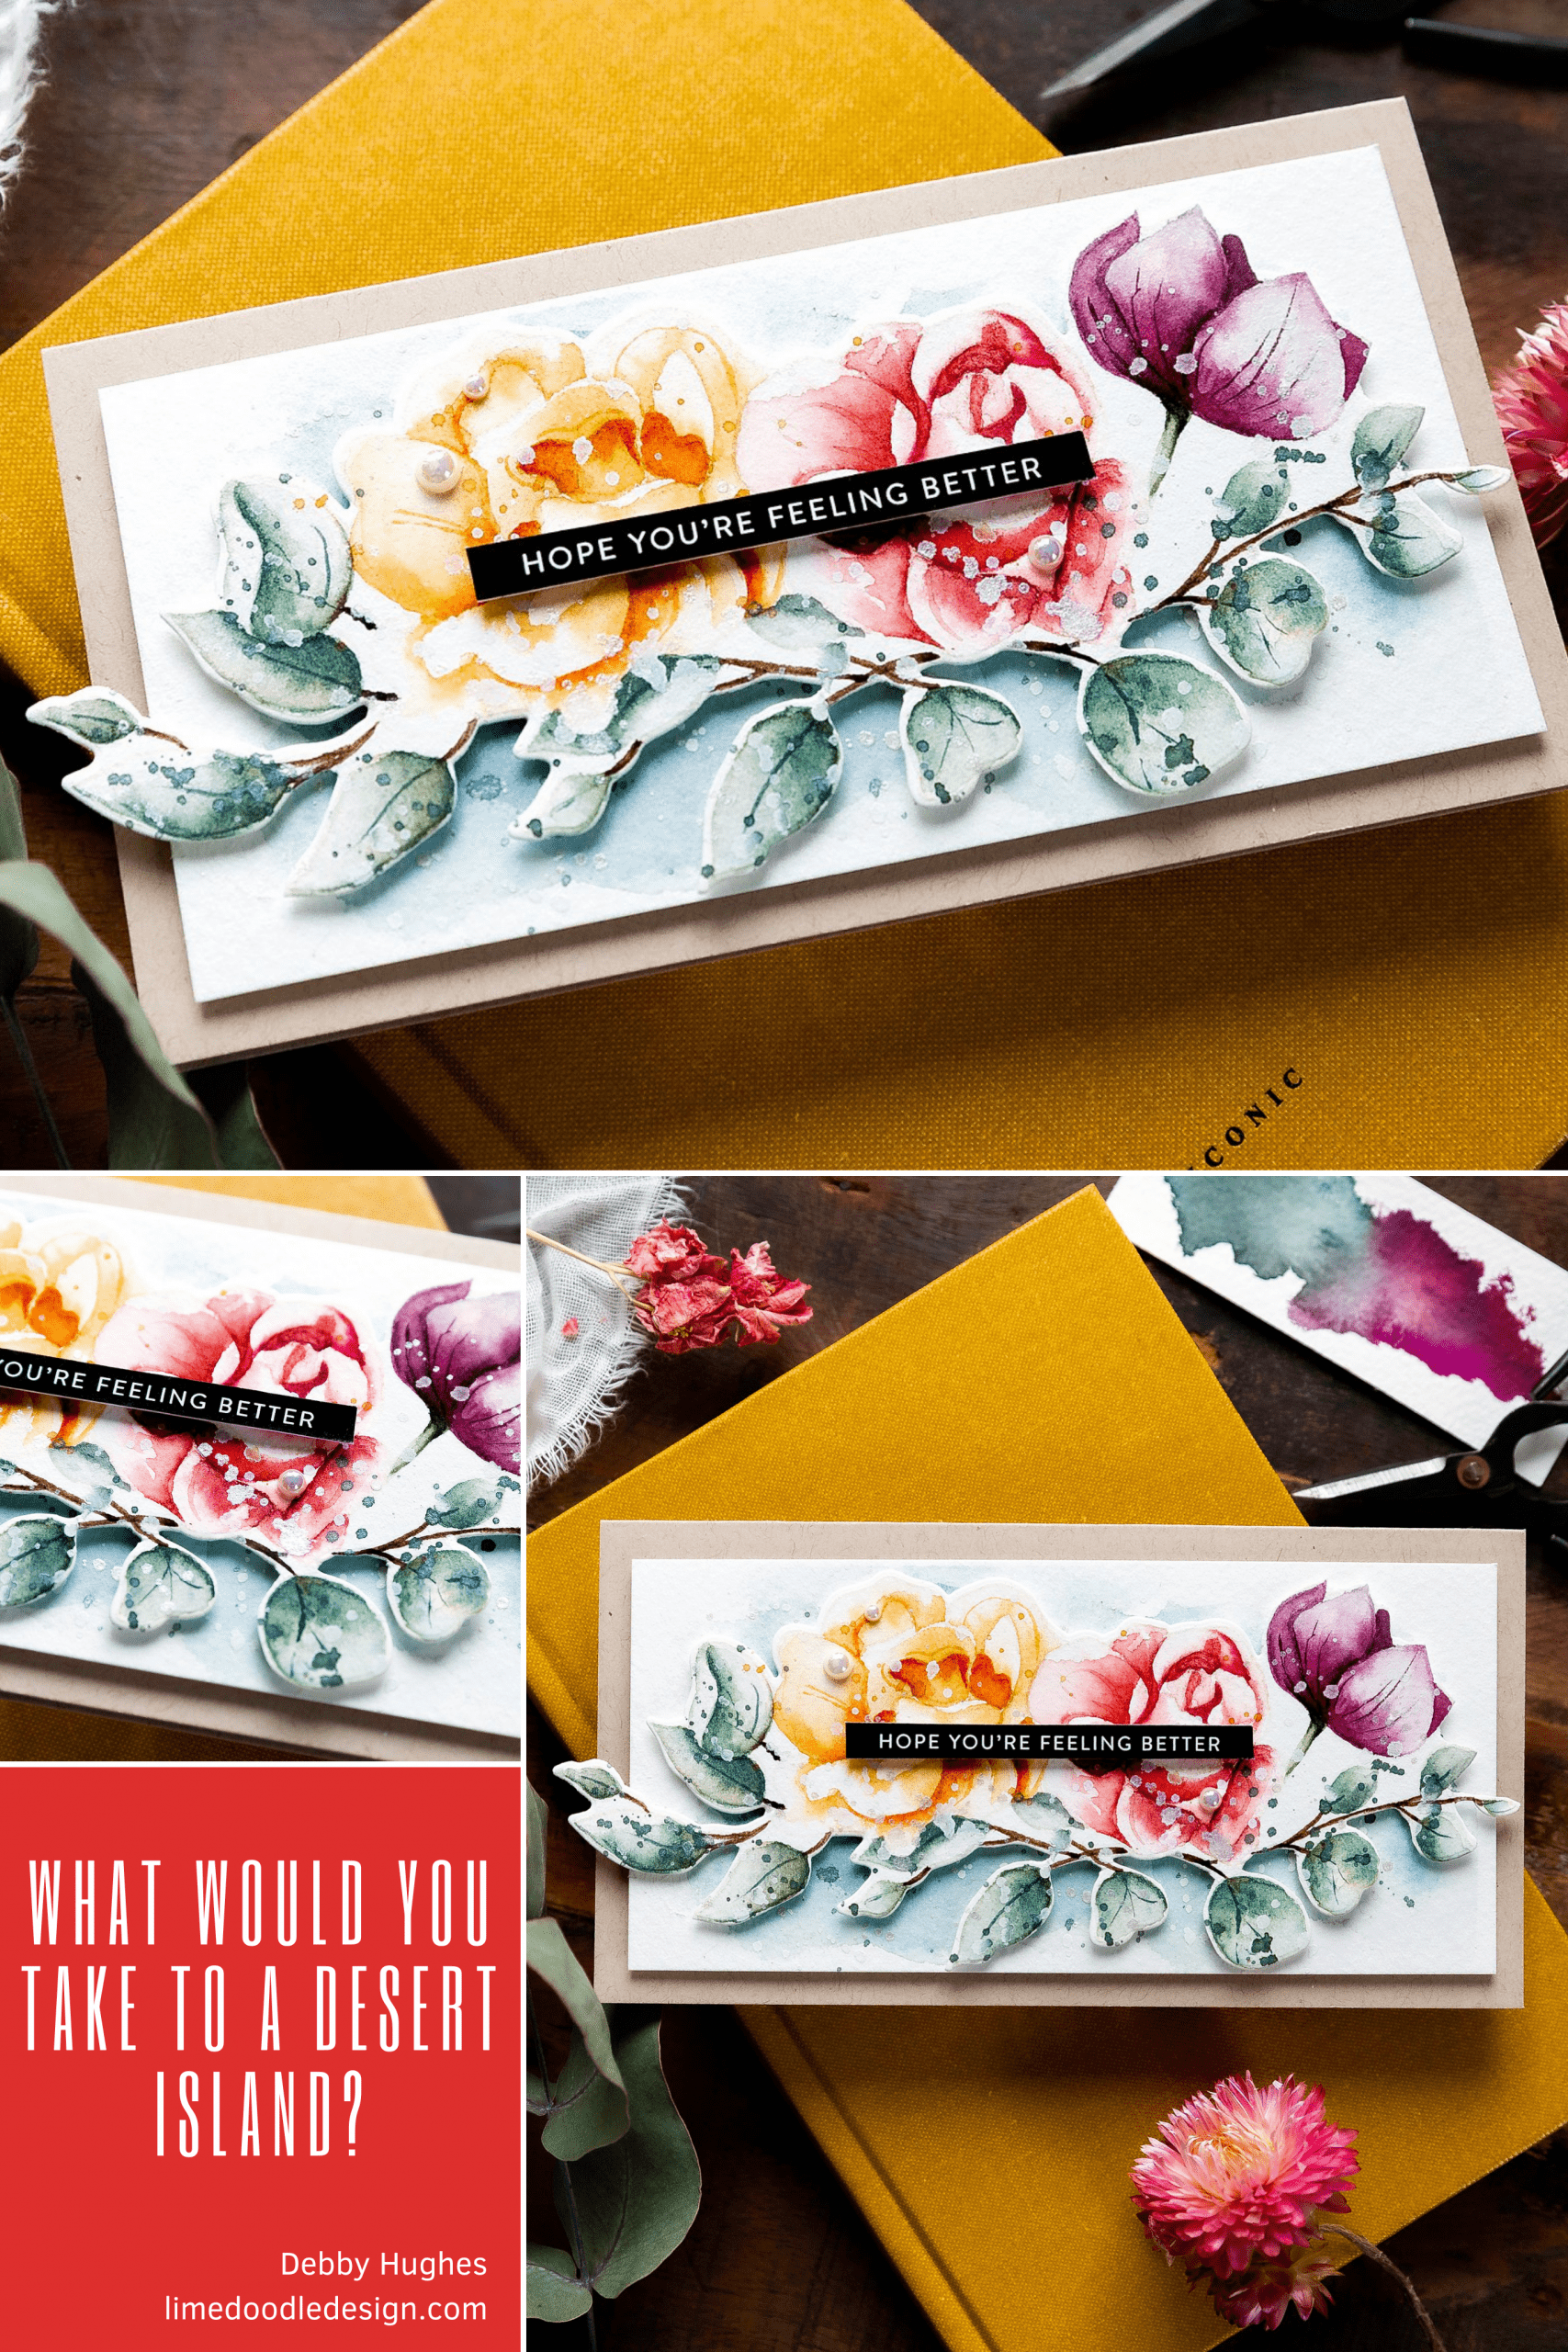 Video tutorial watercoloured spring bouquet and also talking about what I would take to a desert island! Design by Debby Hughes using supplies from Simon Says Stamp #handmadecards #cardmaking #cardmakingideas #cardmakingtechniques  #cardmakingtutorials #handmadecardideas #simonsaysstamp